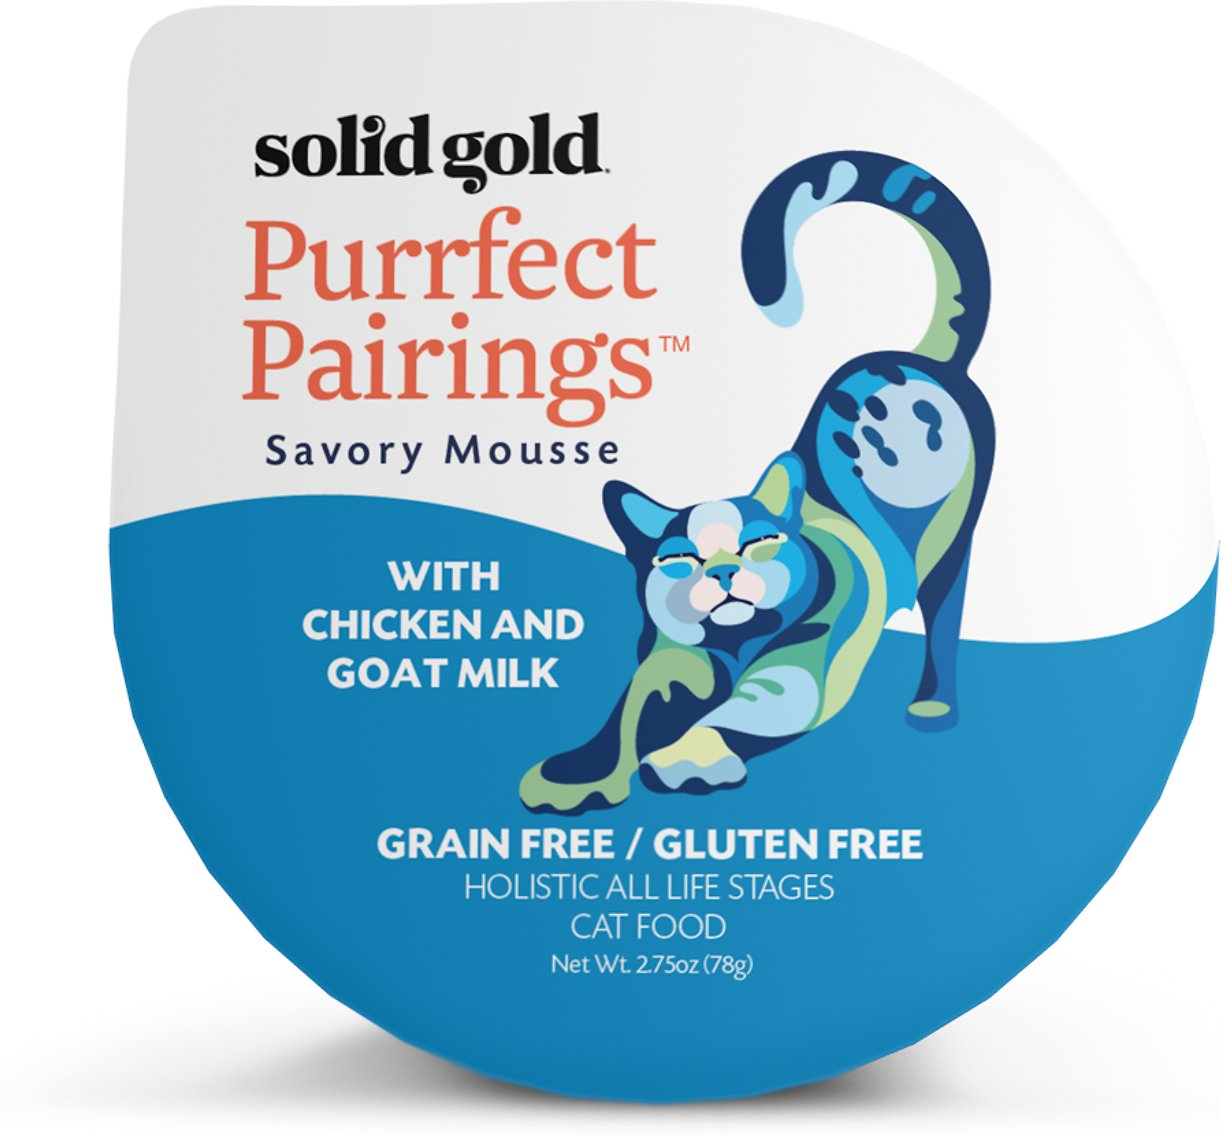 Solid Gold Purrfect Pairings Savory Mousse with Chicken & Goat Milk Grain-Free Cat Food Cups, 2.75-oz